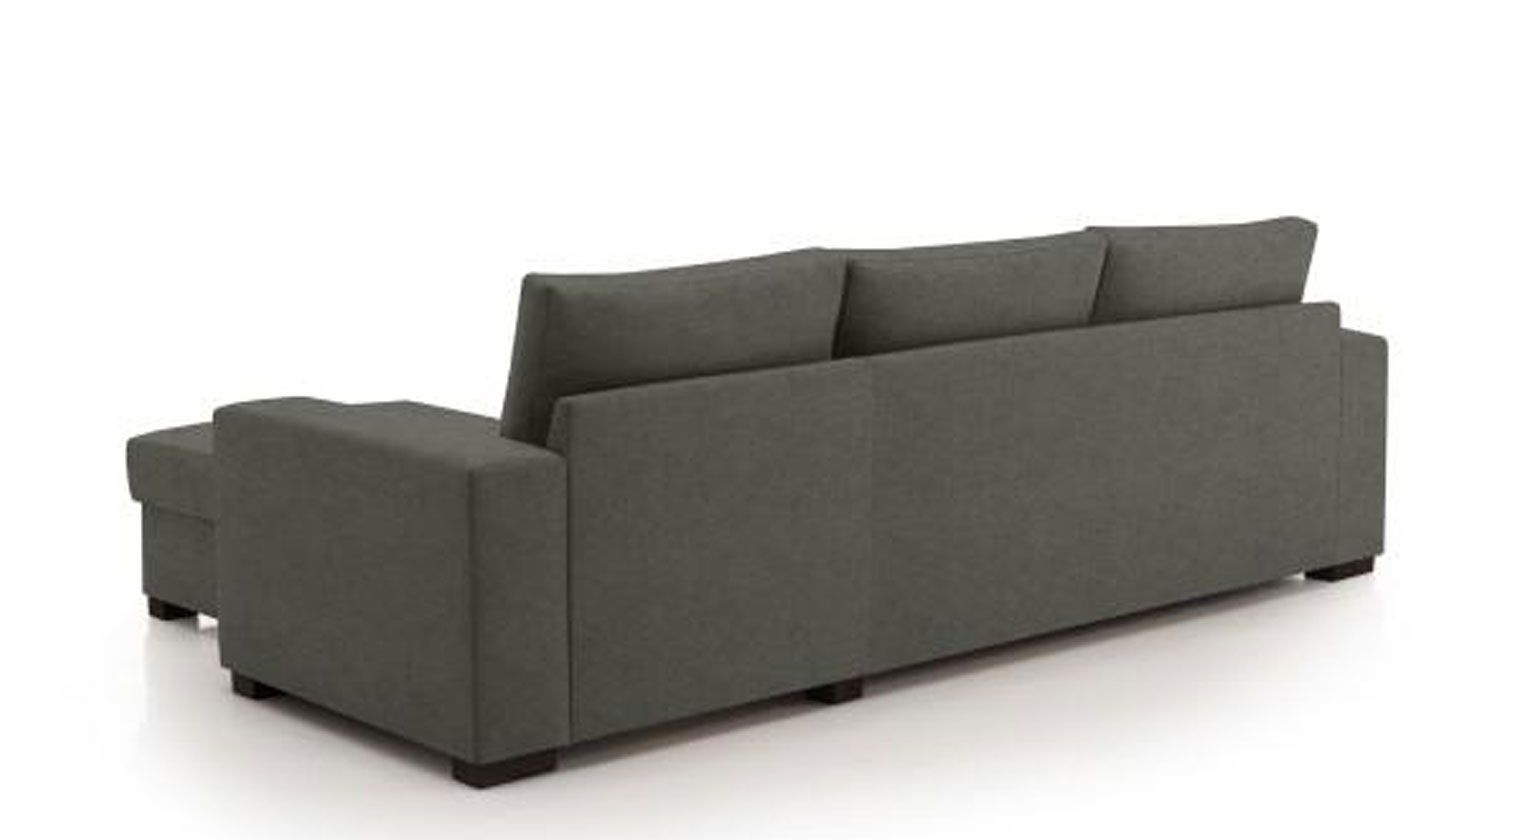 tumb-Chaise-Longue-Cama-DENIA-3